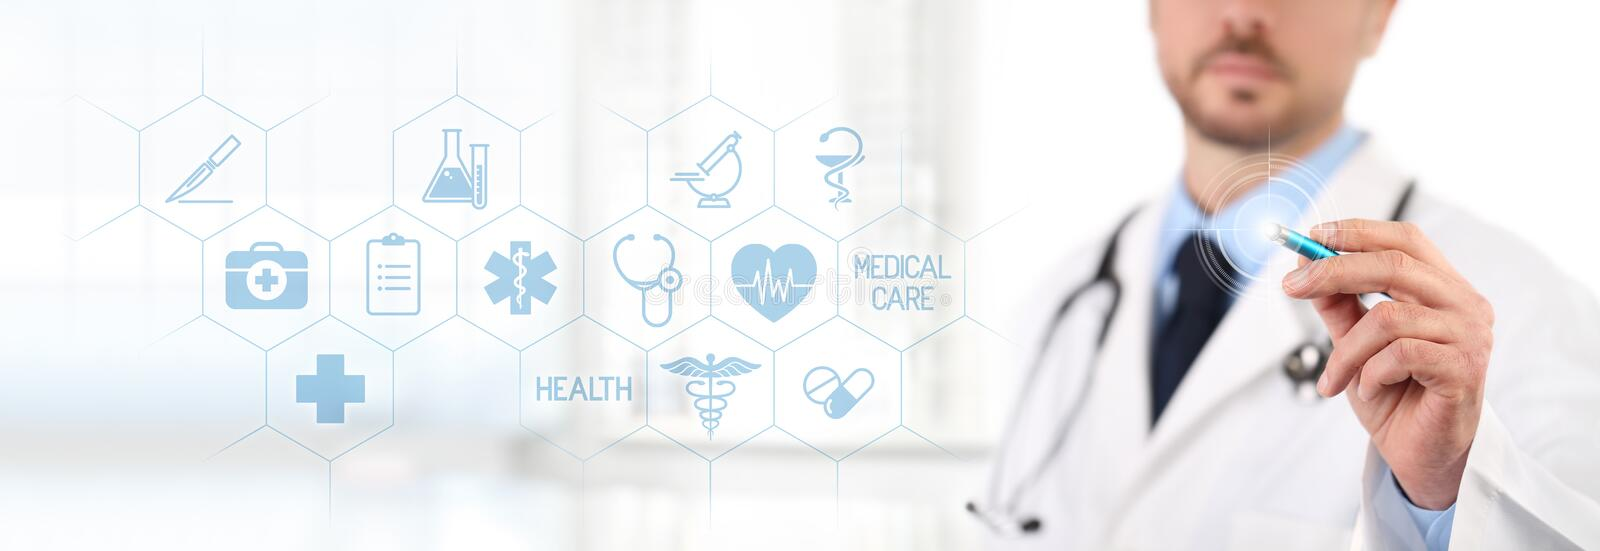 Doctor touch screen with a pen, medical symbols icons on background health care concept royalty free stock photography